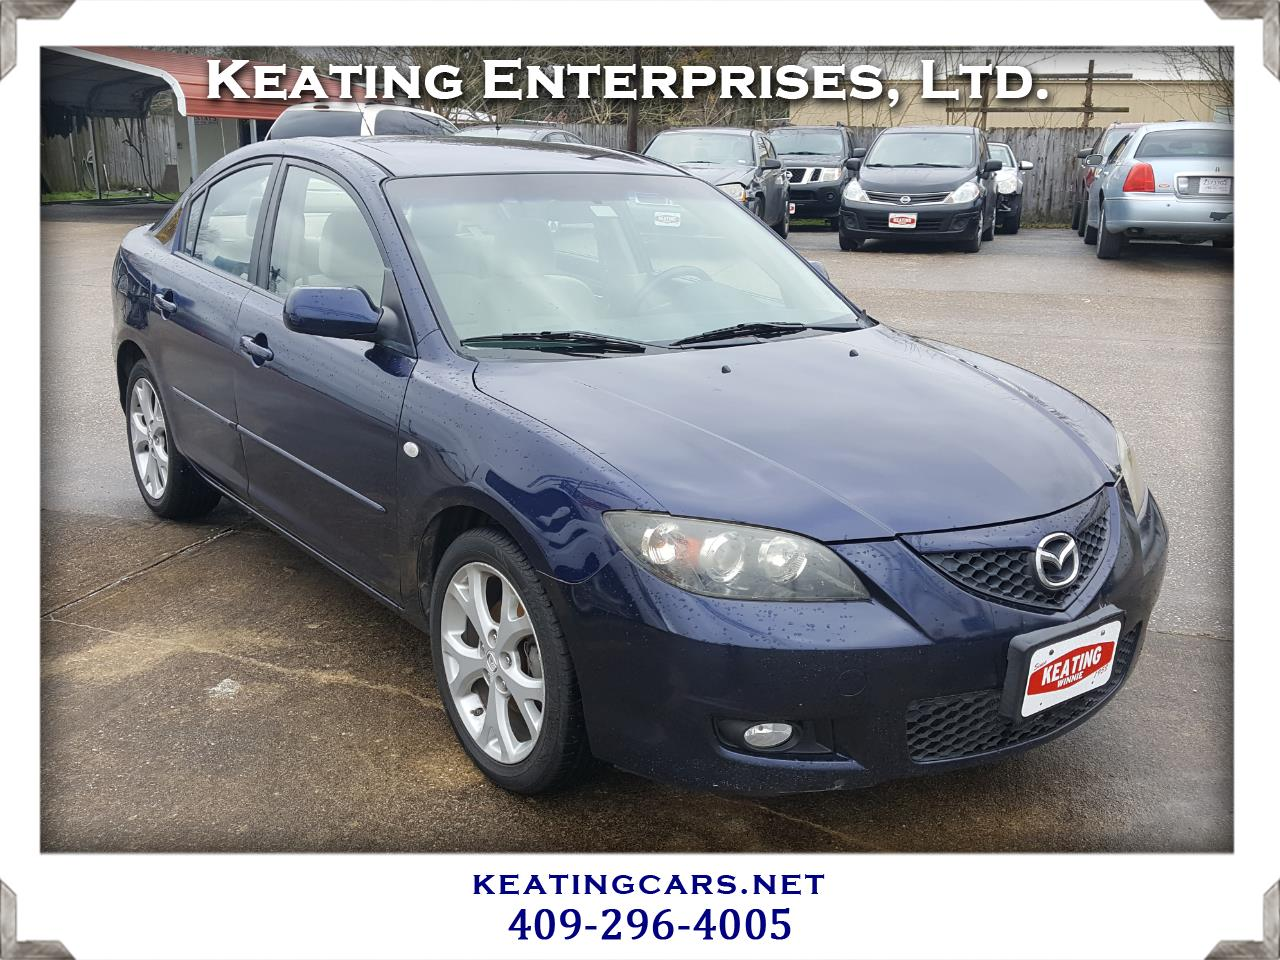 2008 Mazda MAZDA3 4dr Sdn Auto i Touring Value